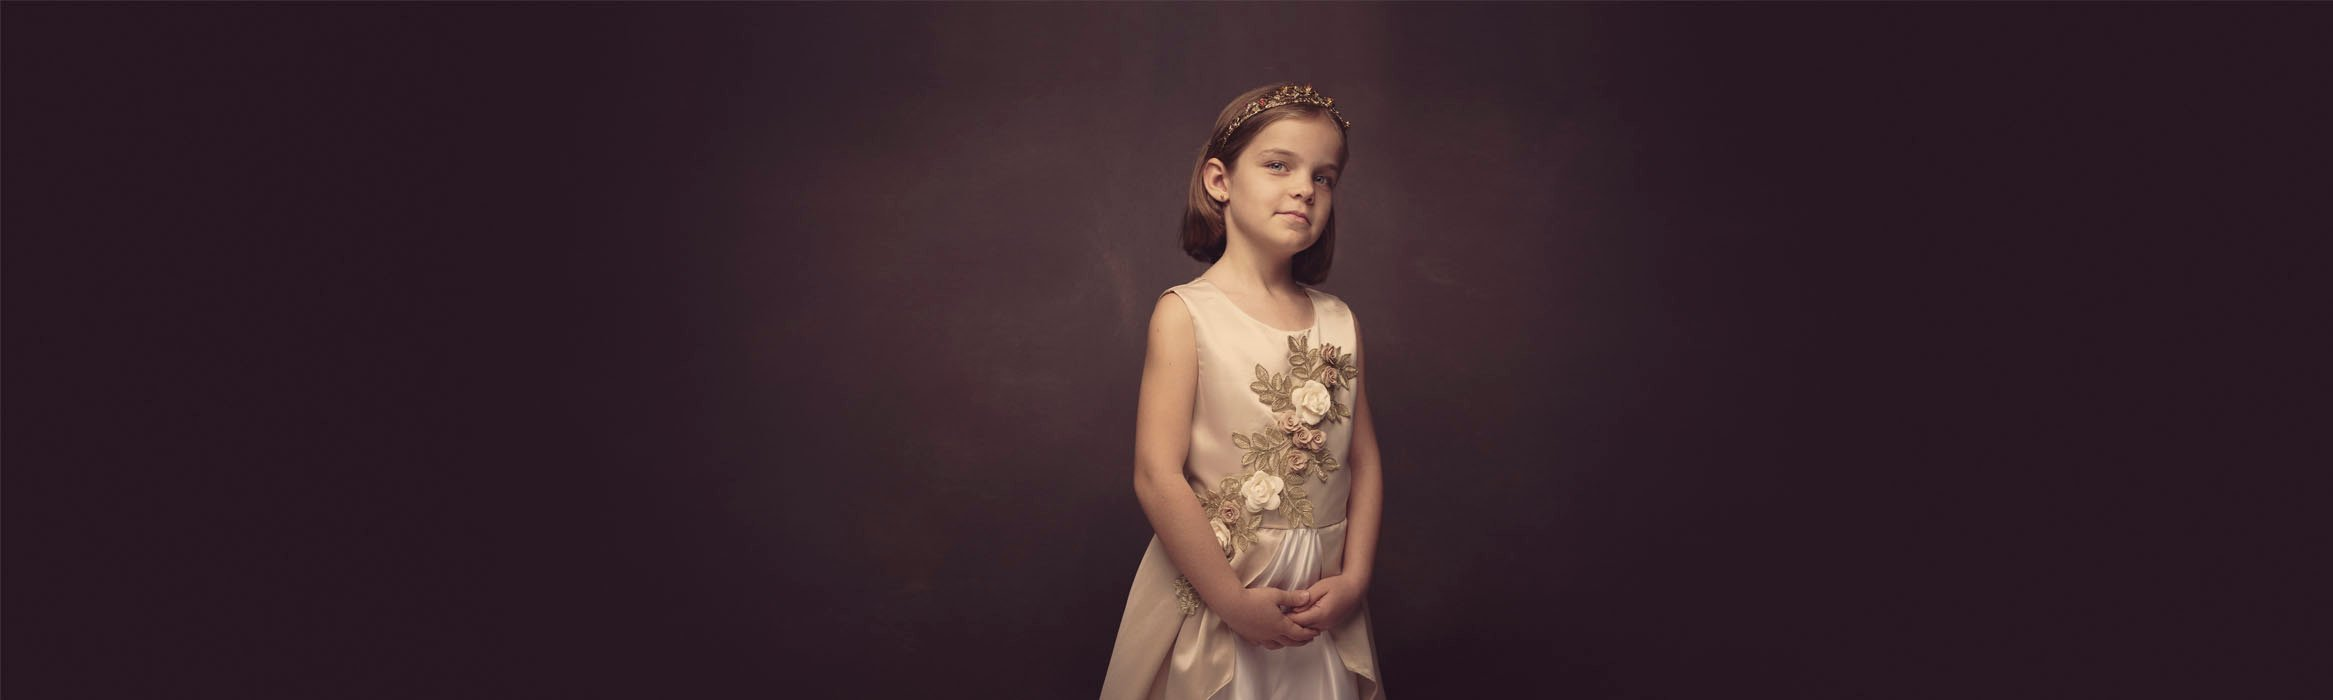 Child princess photography